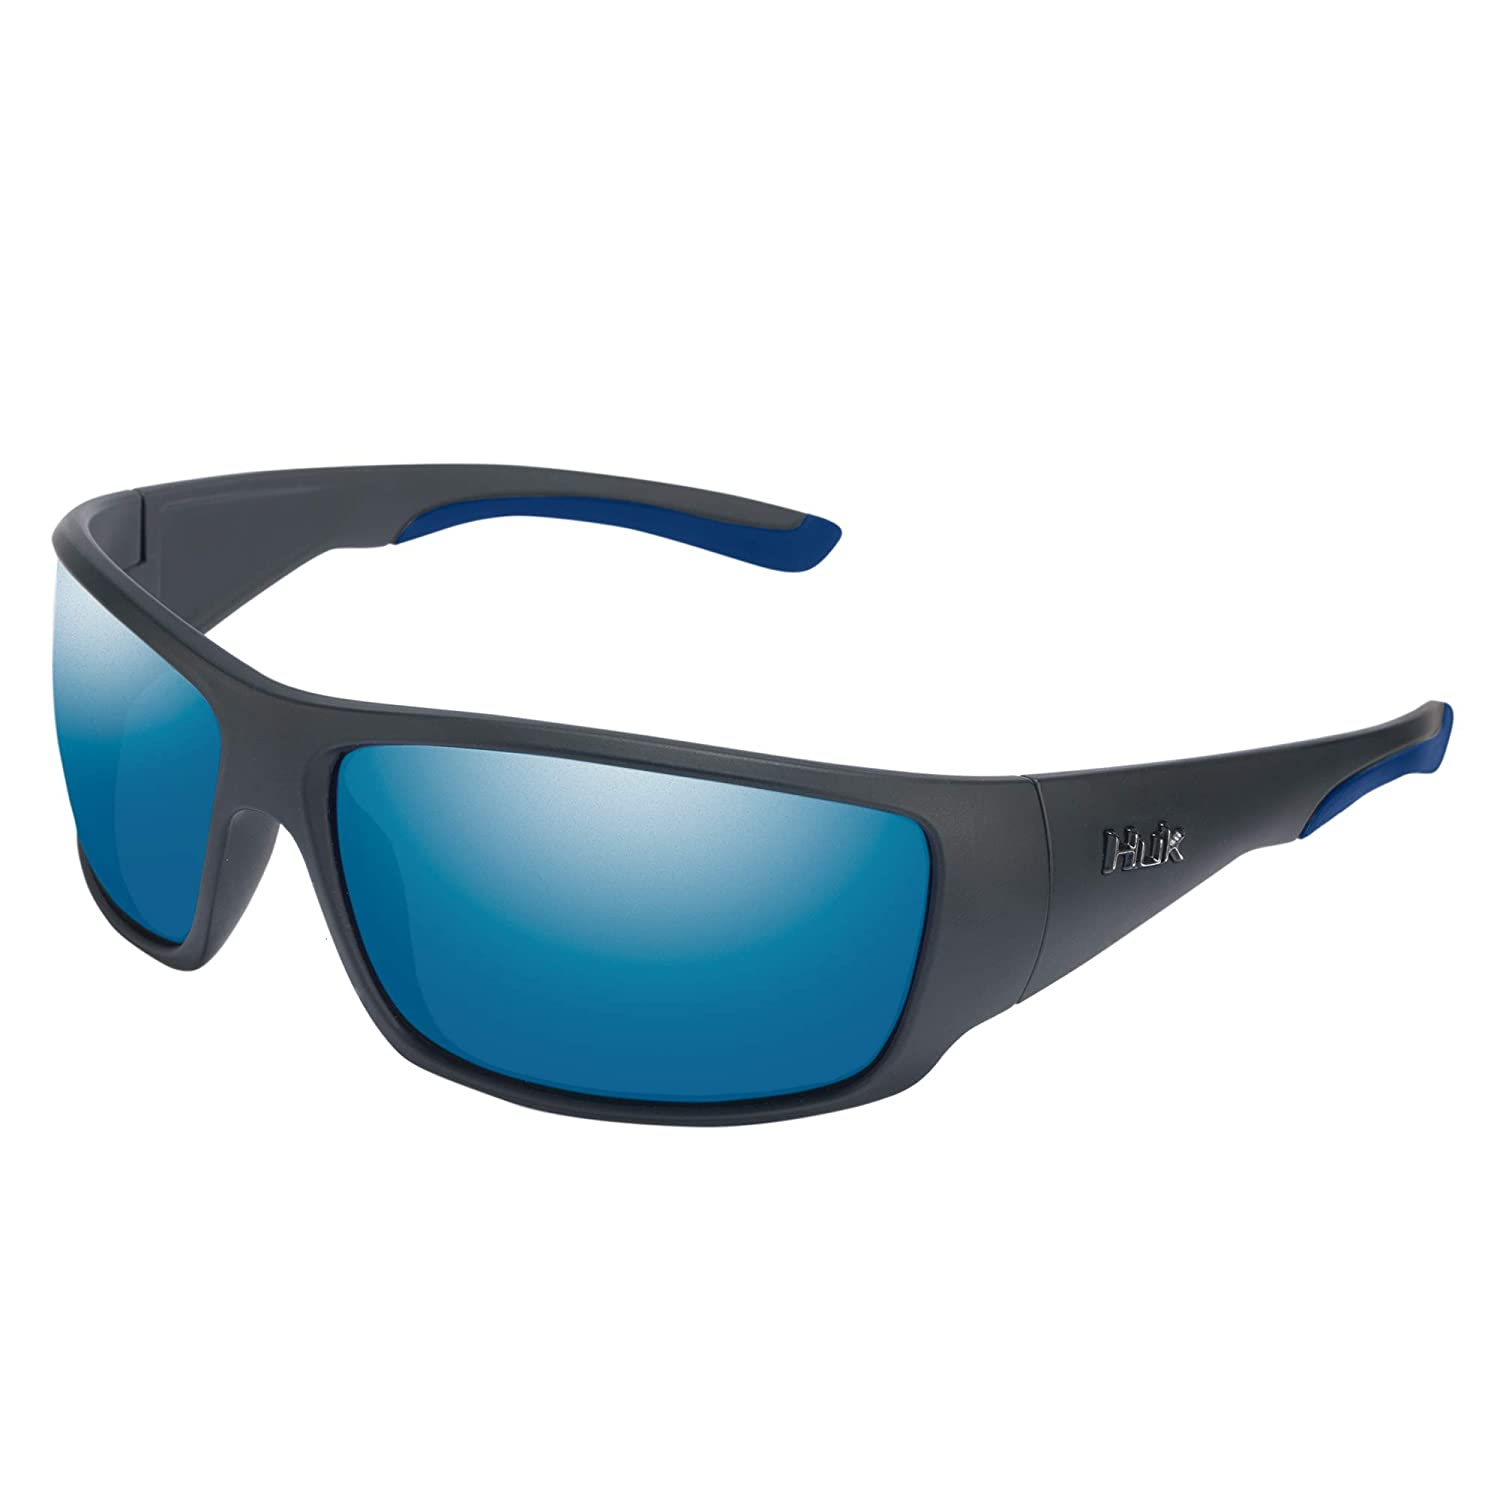 Huk Spearpoint Sunglasses | Best Wraparound Design